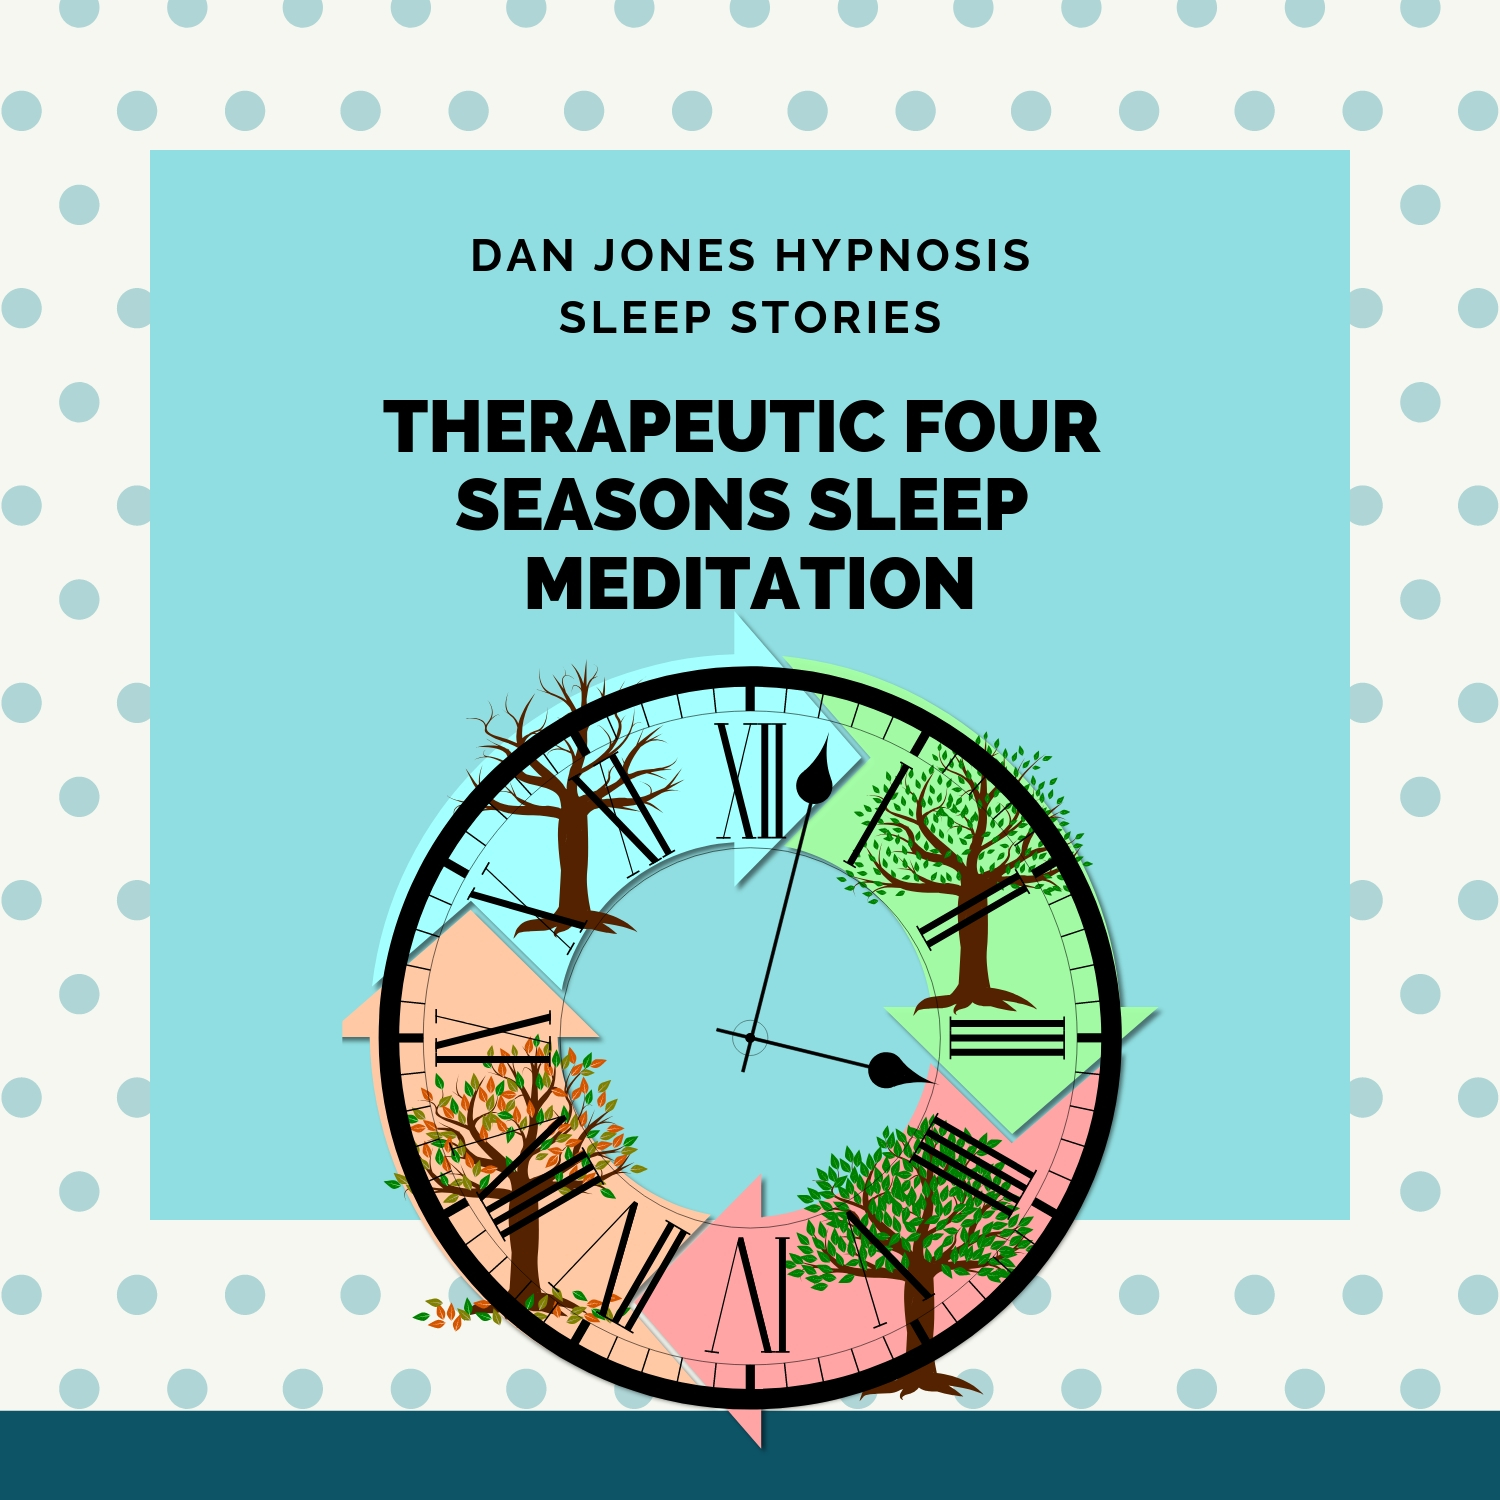 Therapeutic Four Seasons Sleep Meditation (Search Streaming Services for Dan Jones Sleep Meditation Sleep Stories Albums)